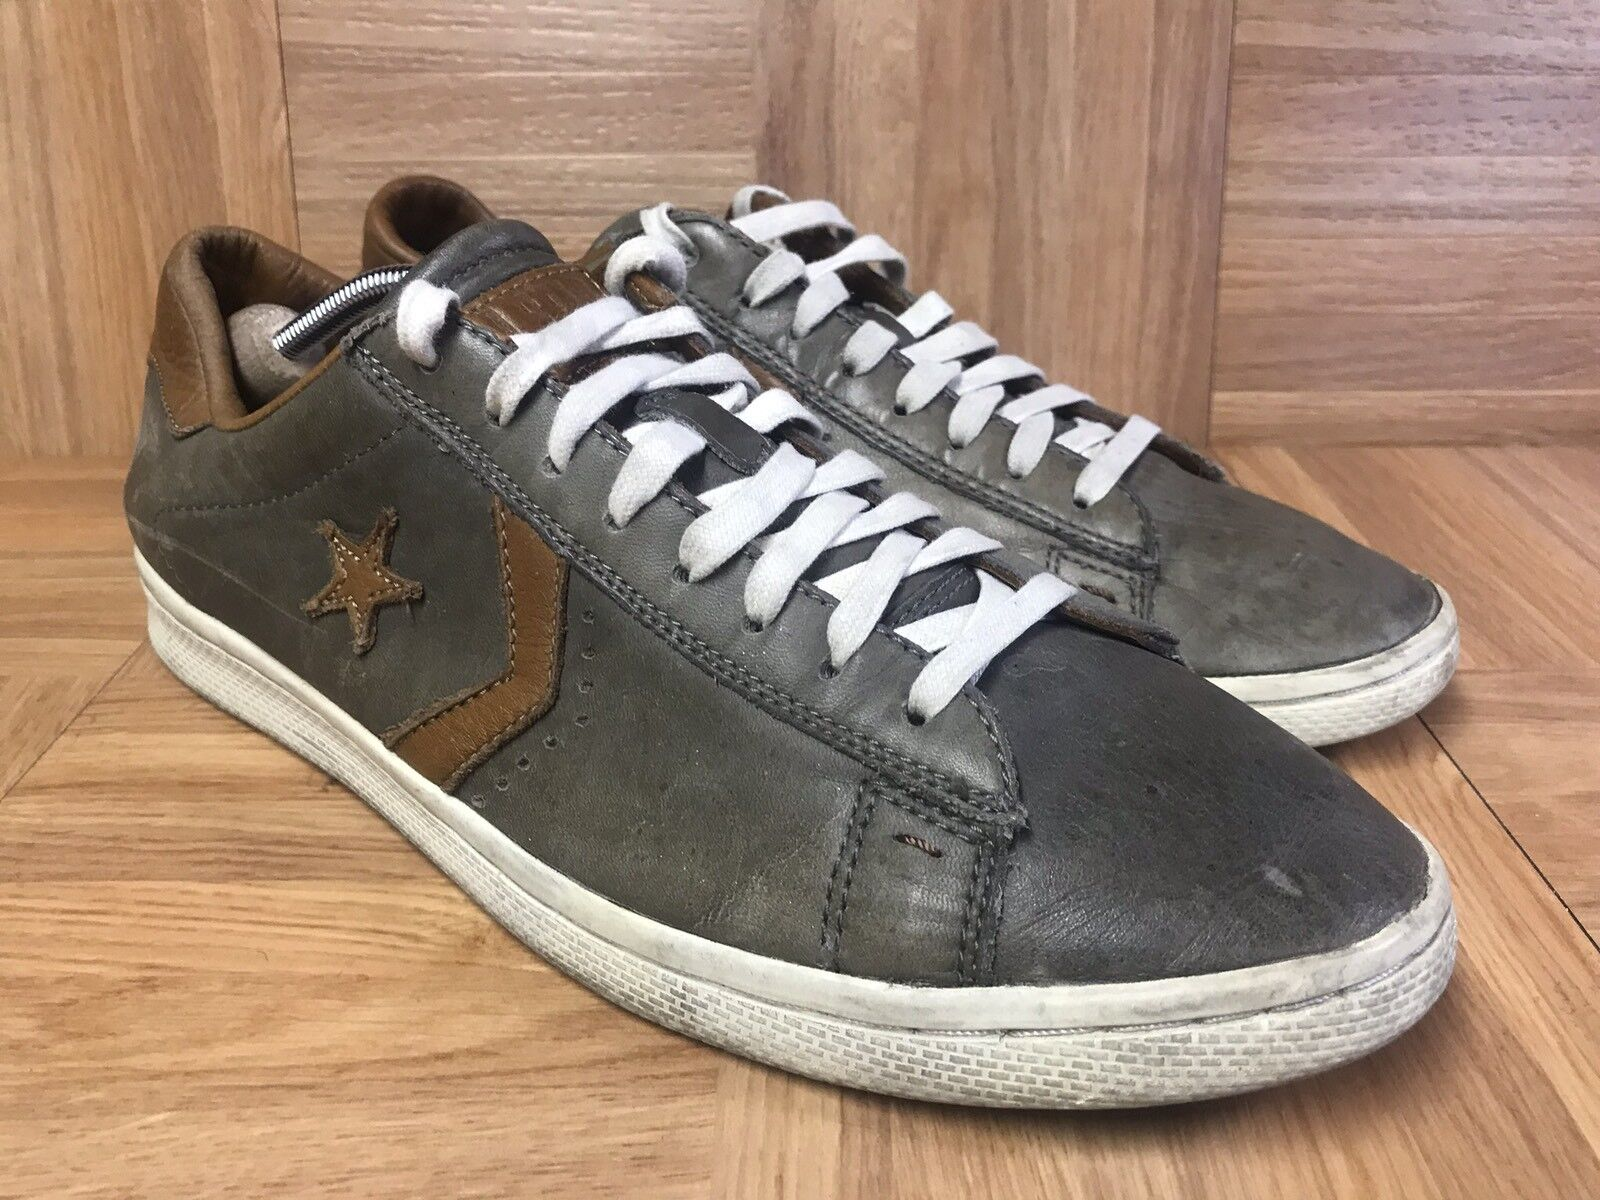 RARE Converse John Varvatos PRO Low Leather OX Charcoal Sneakers OX SZ 11 Bird